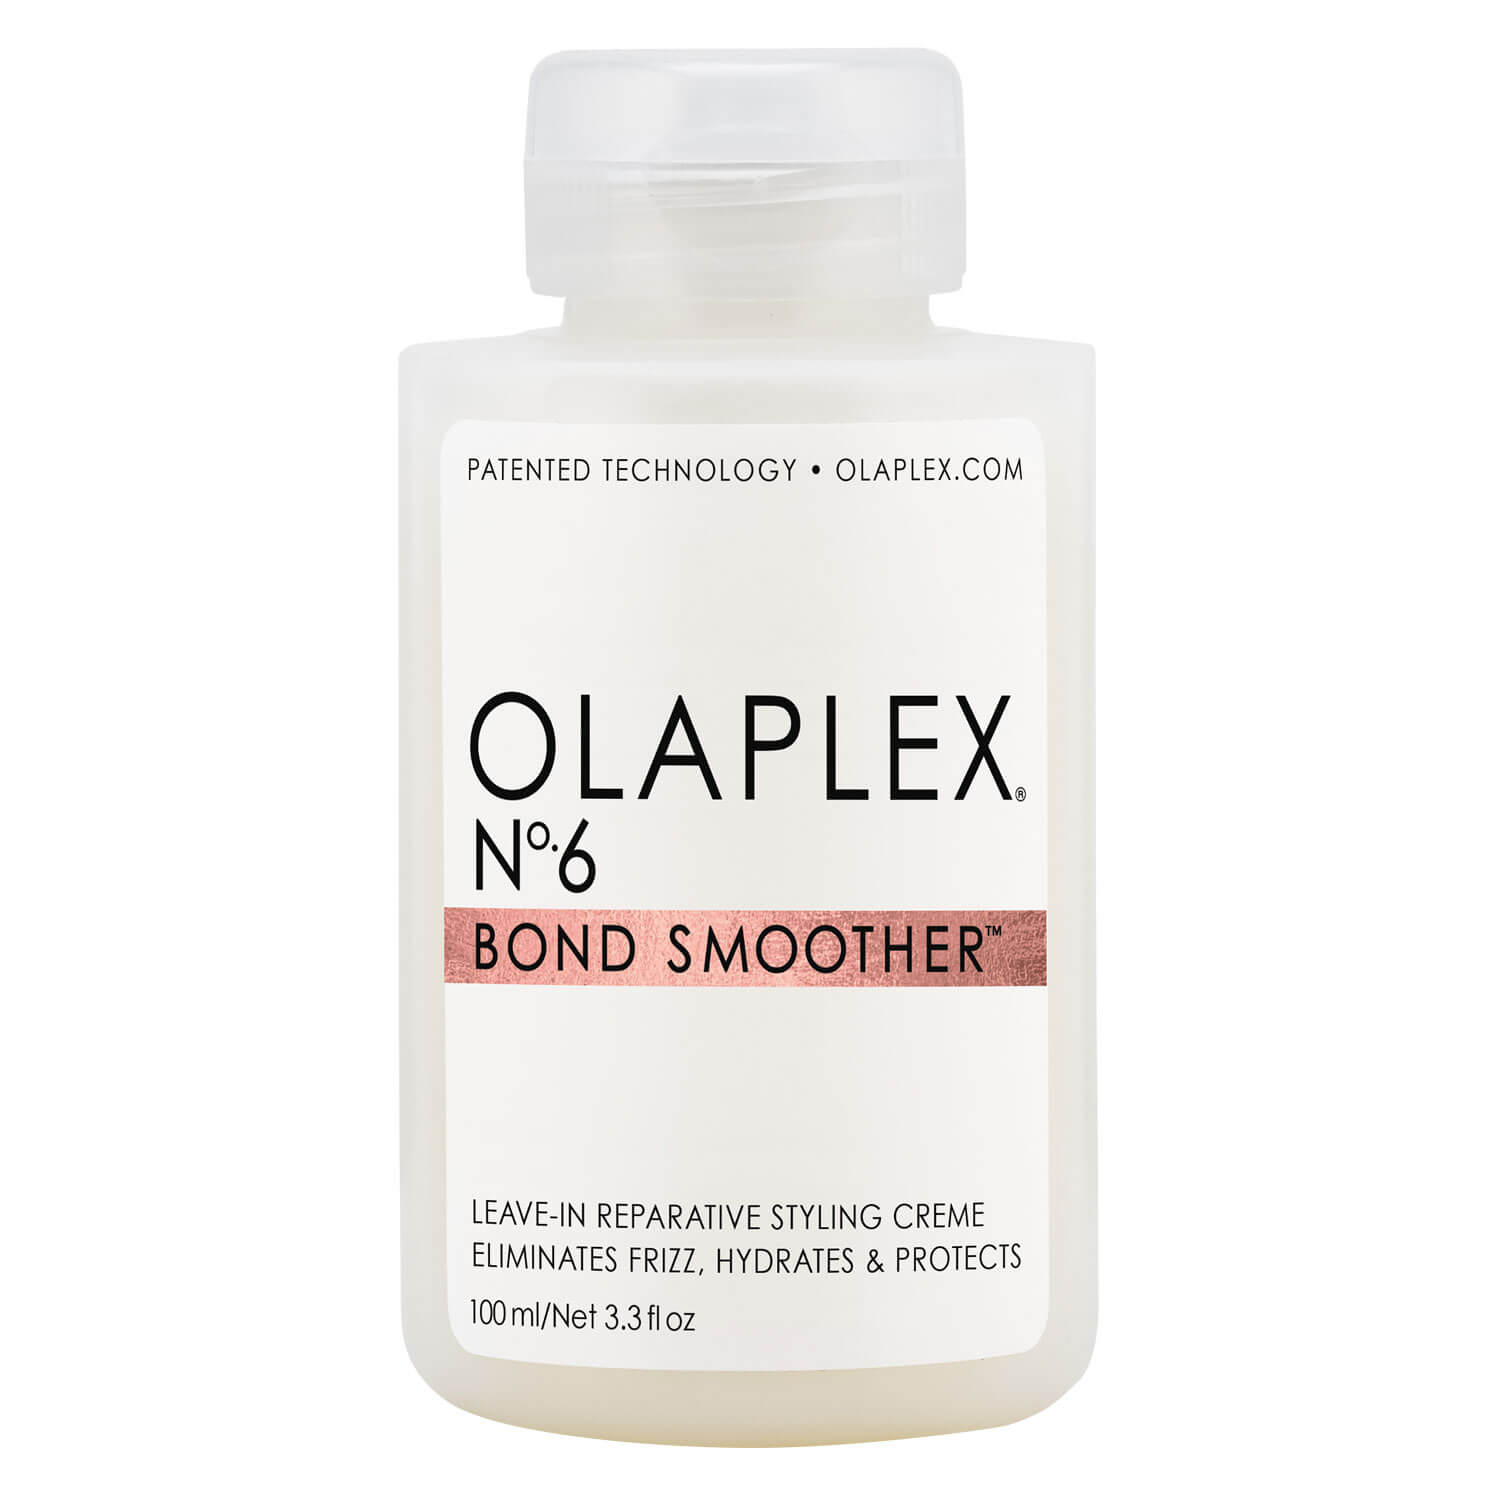 Olaplex - Bond Smoother No. 6 - 100ml